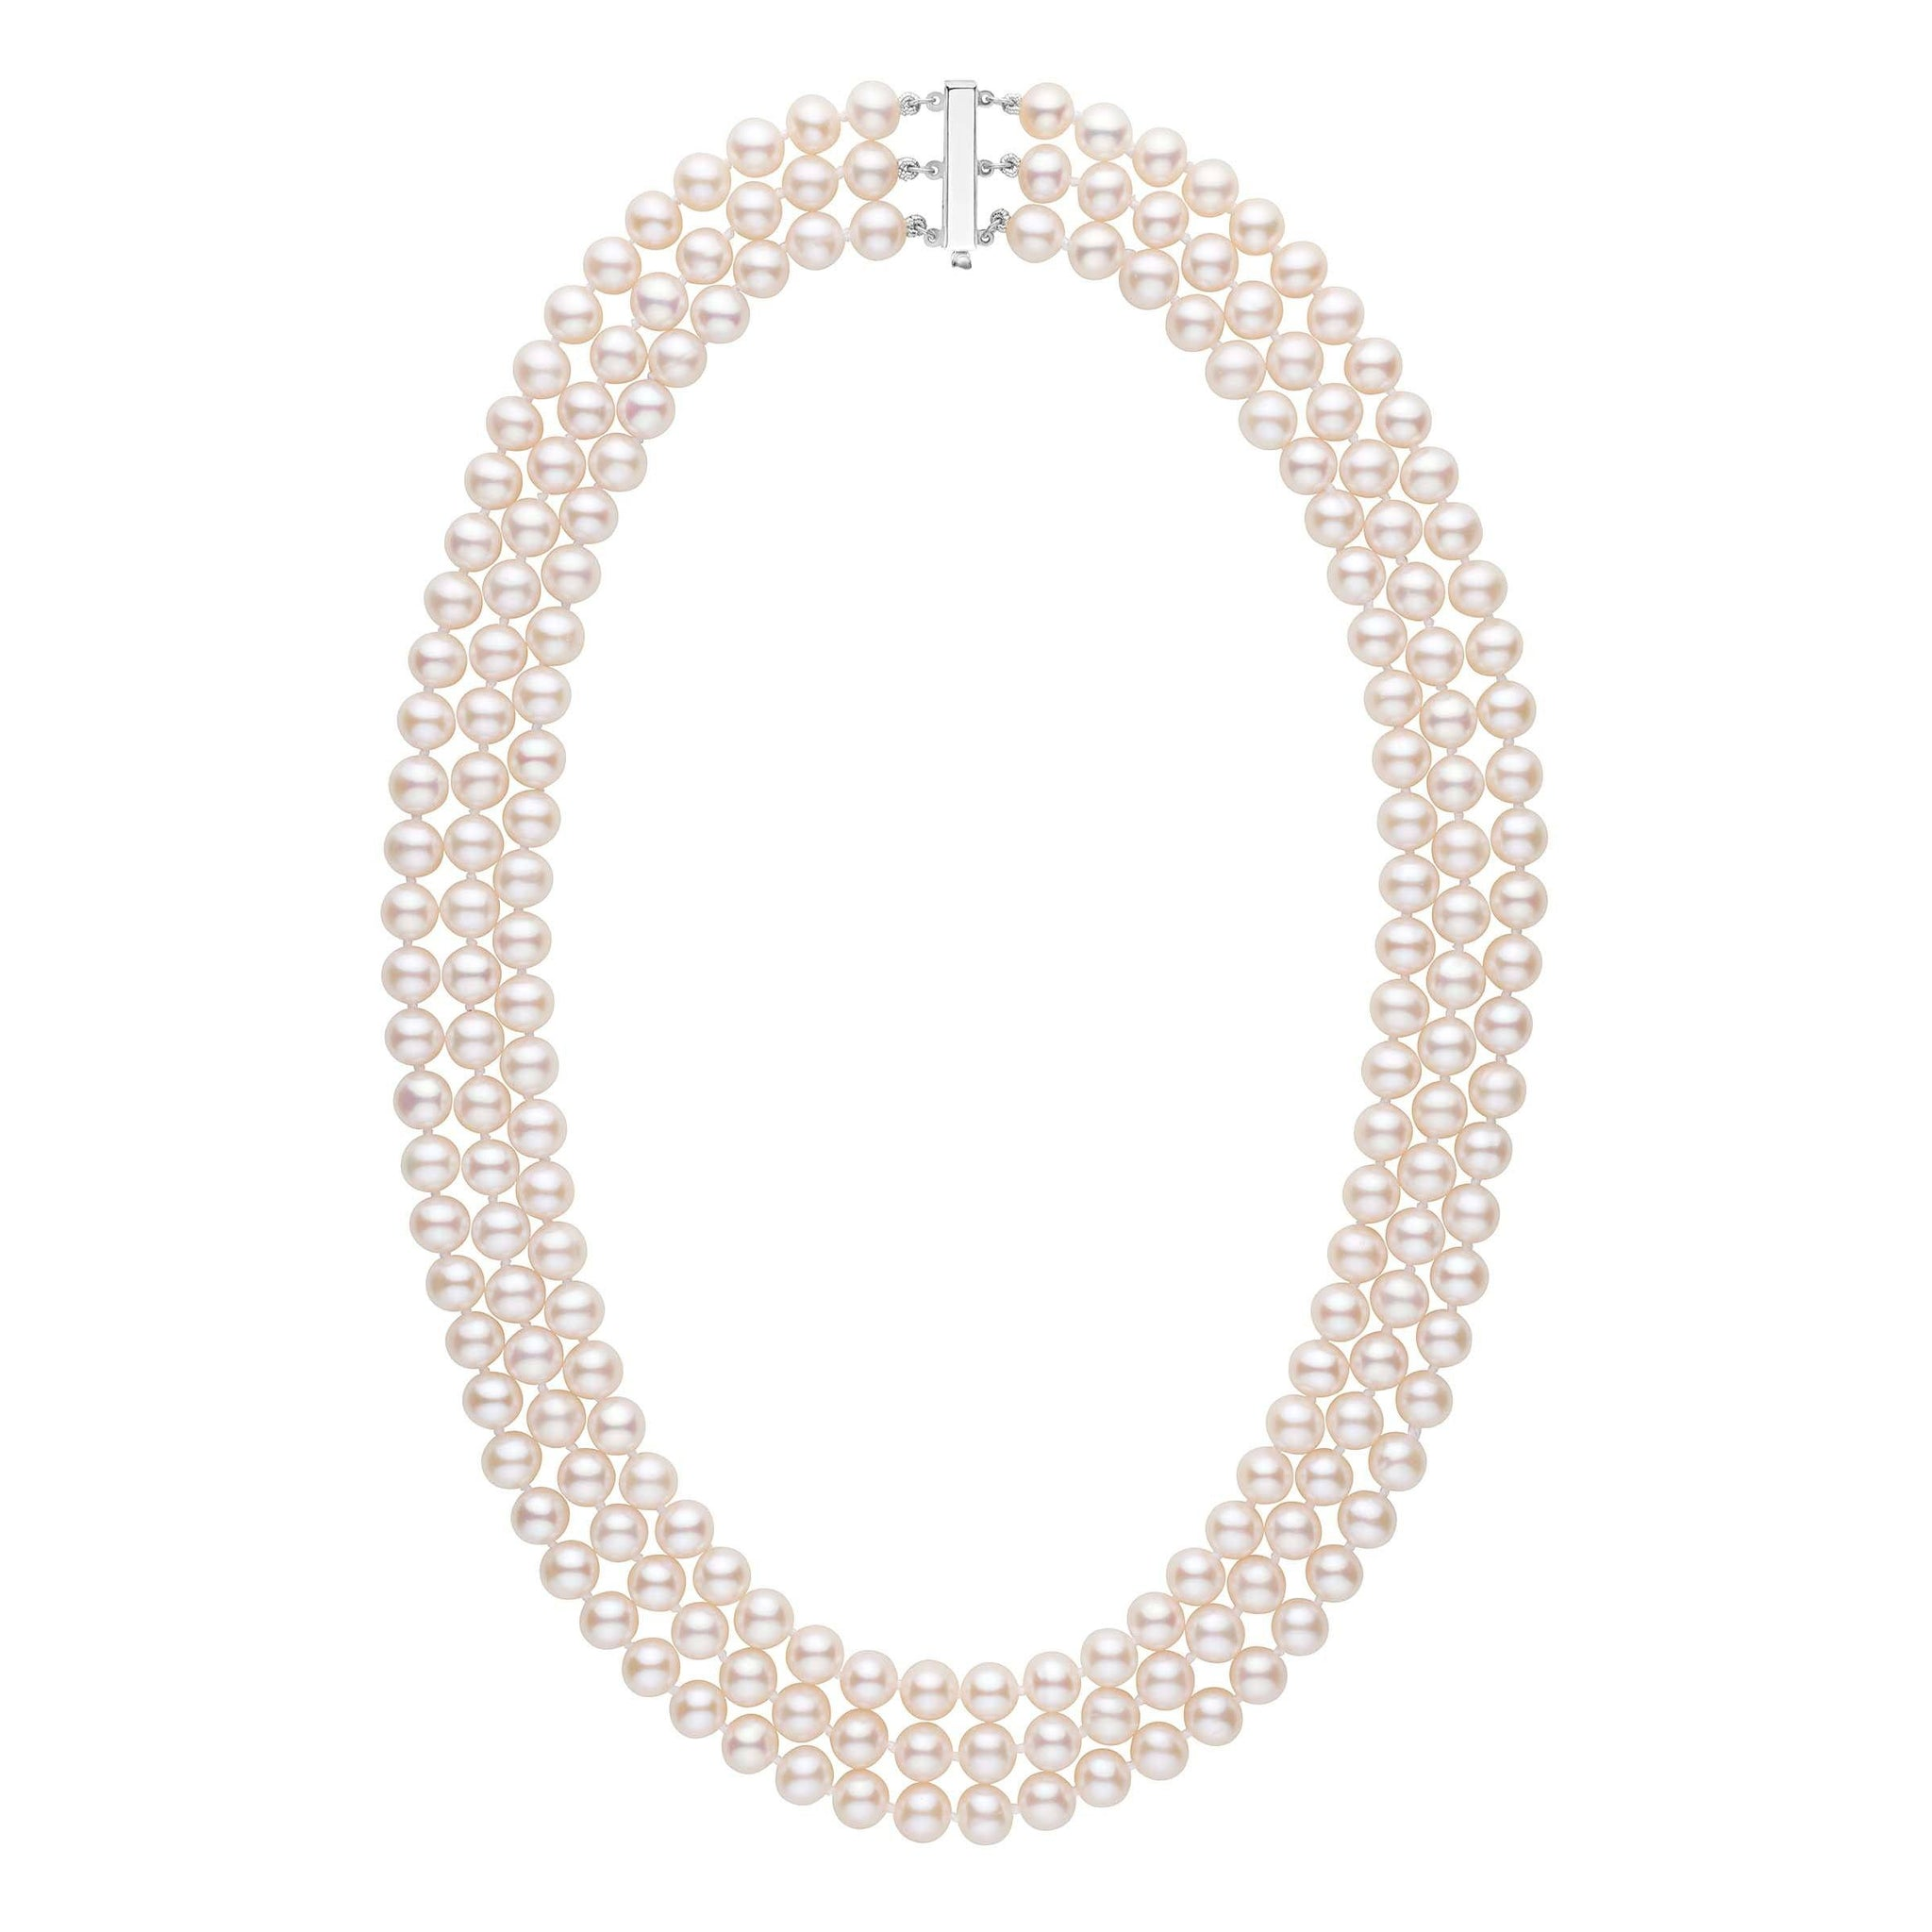 6 5-7 0 mm Triple-Strand AAA White Freshwater Pearl Necklace